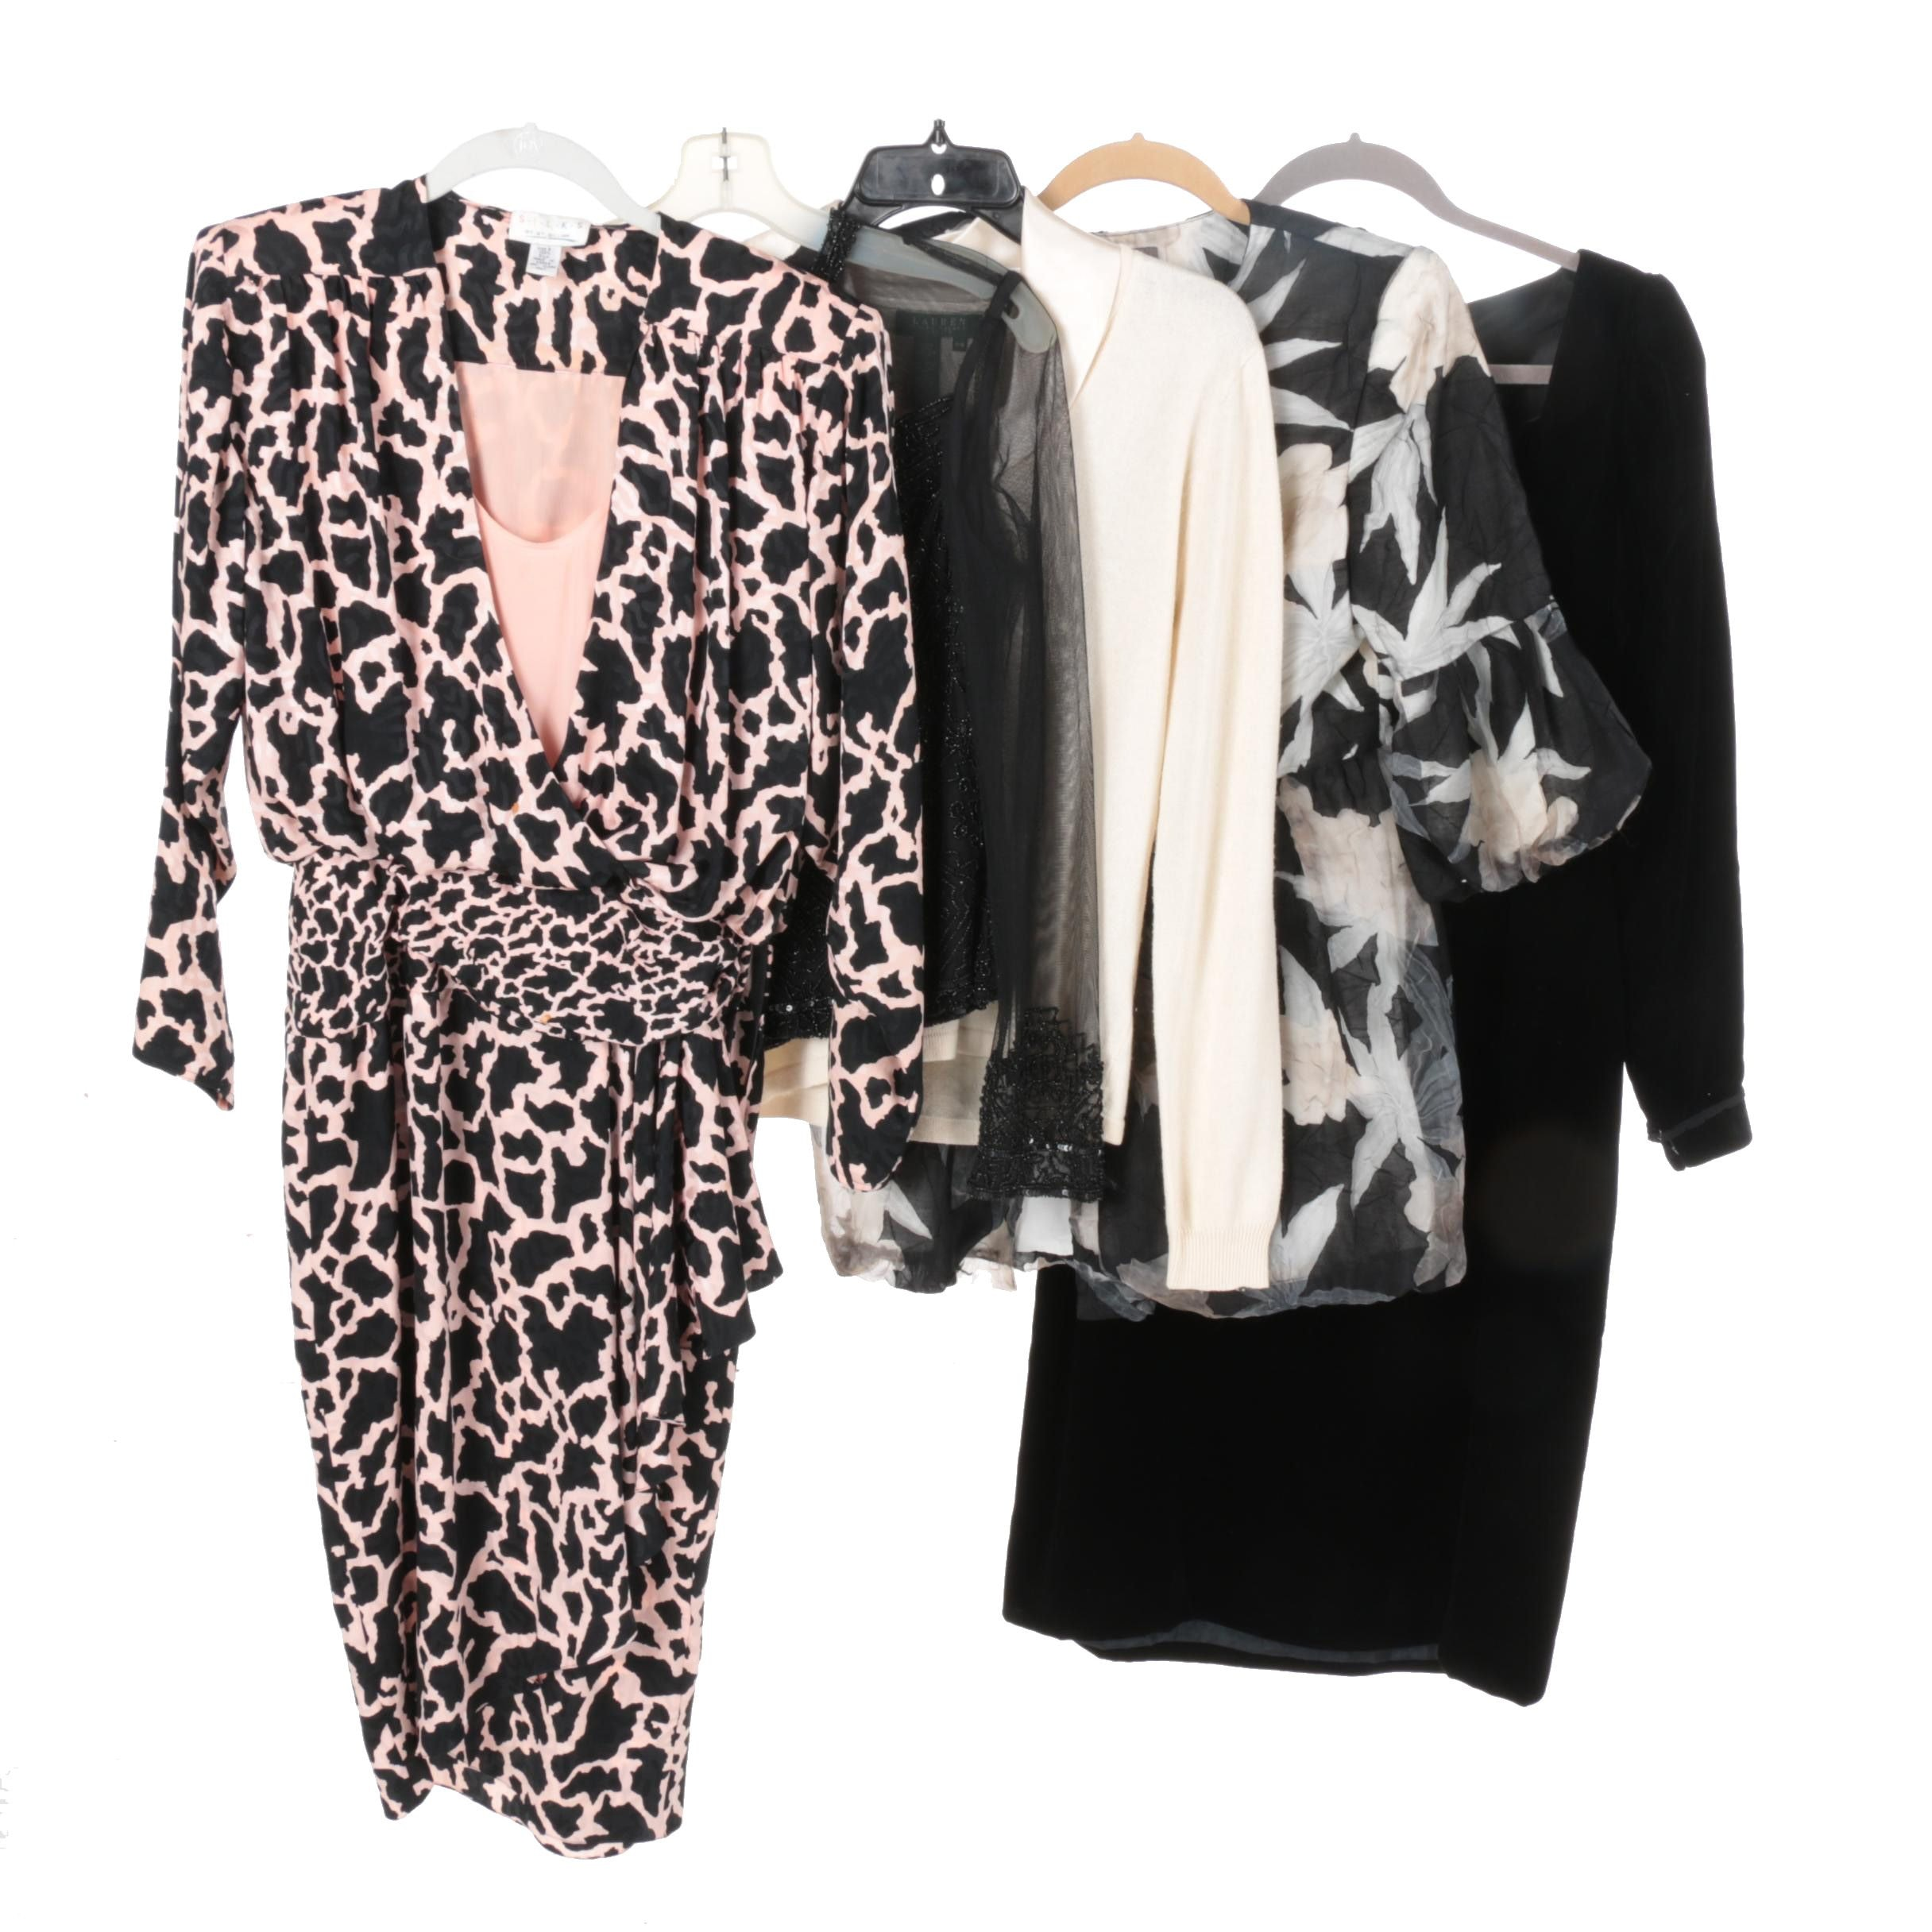 Women's Dresses and Blouses Including Marina by Marina Bresler